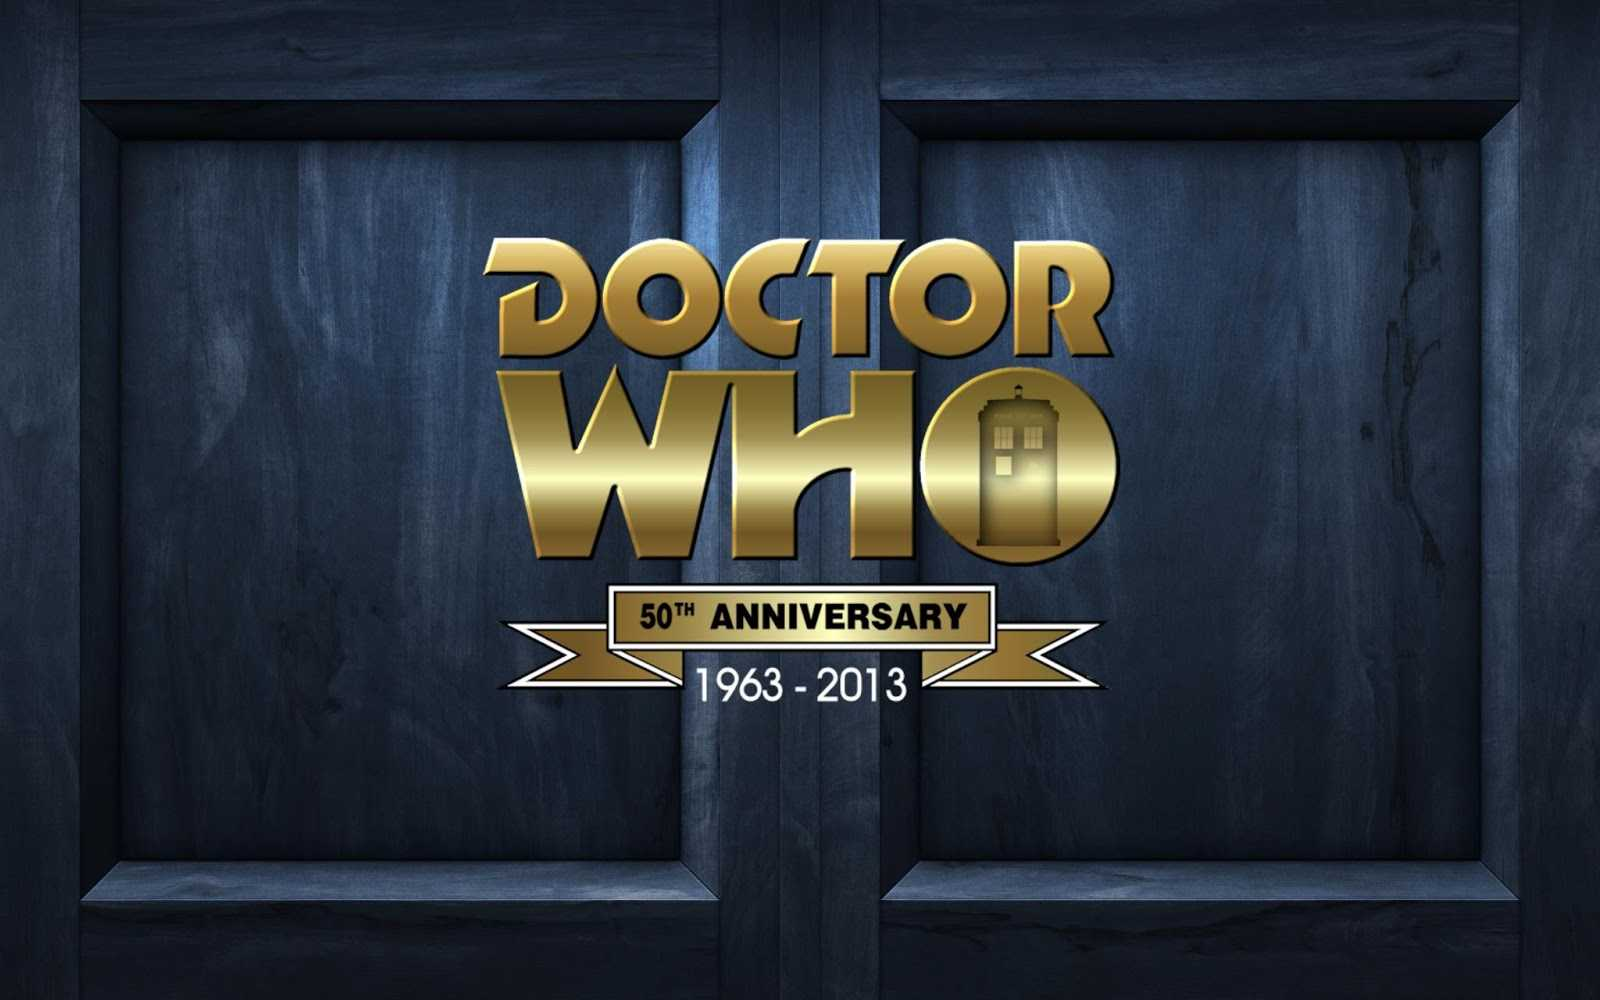 Doctor Who 50th Anniversary Behind The Scenes Photos Released